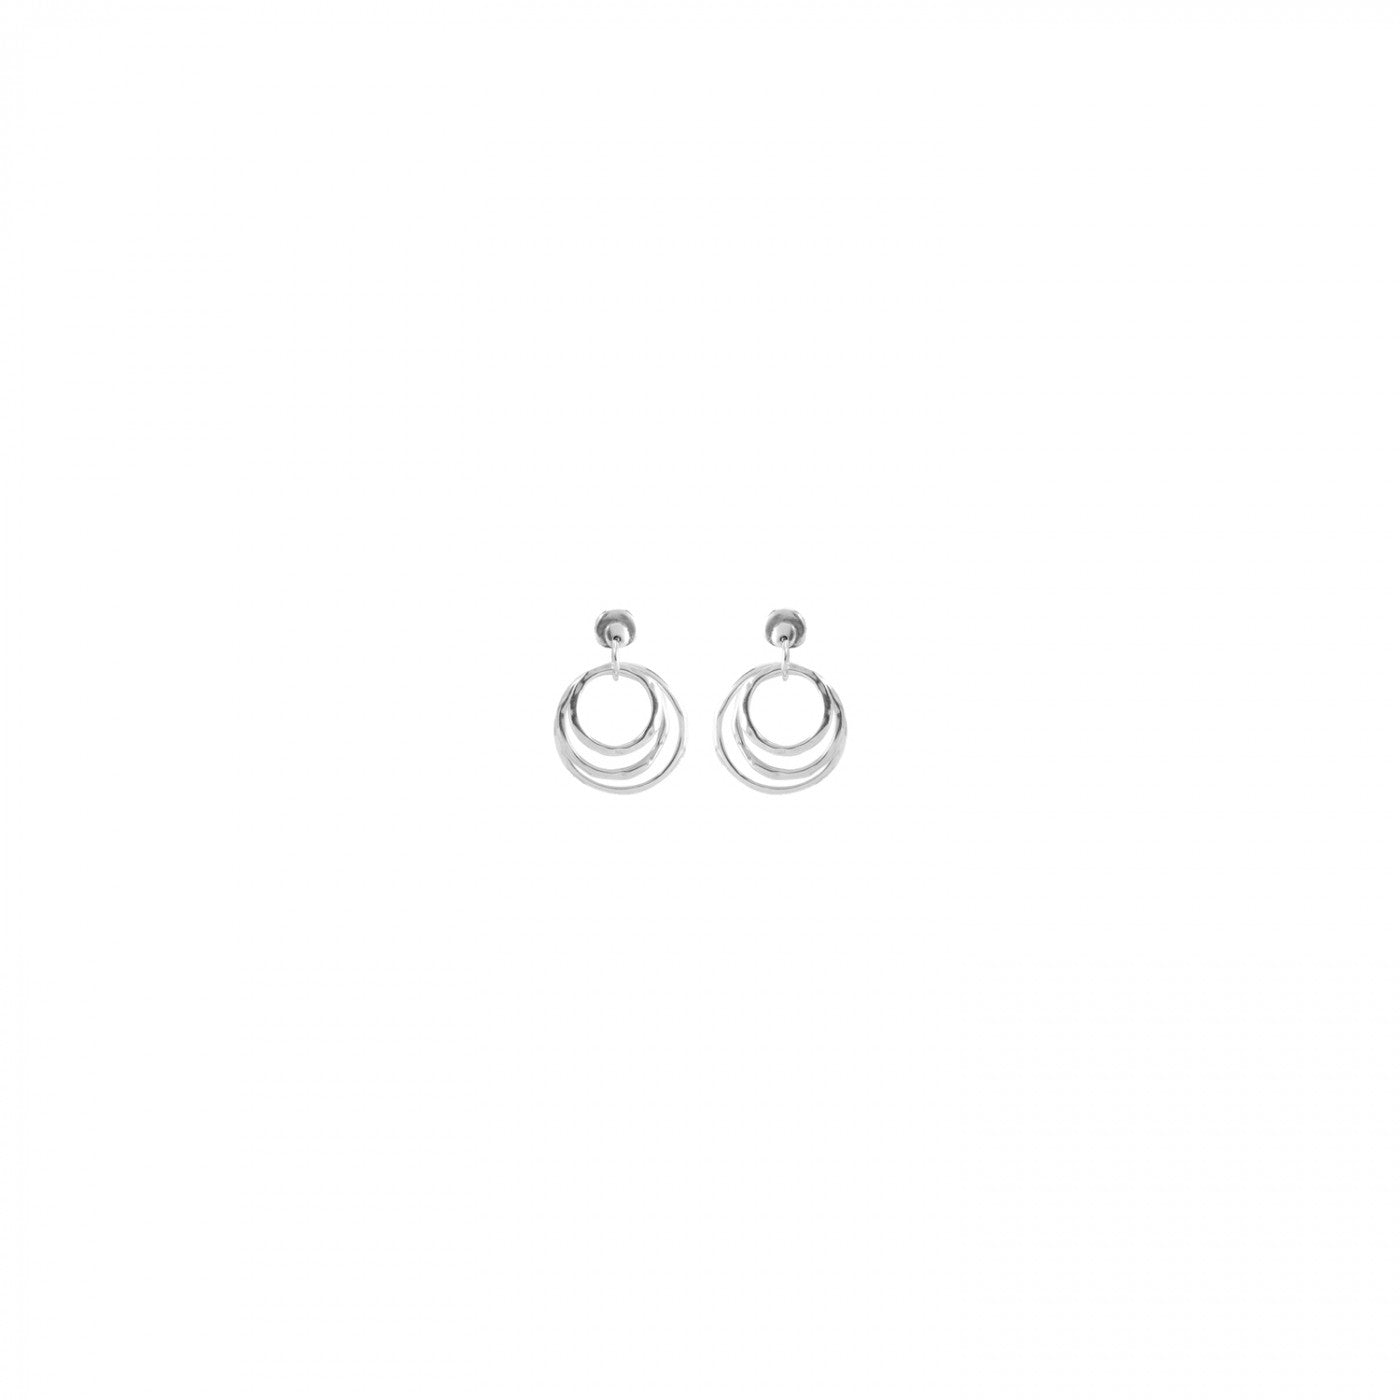 Hipster Earrings - Silver